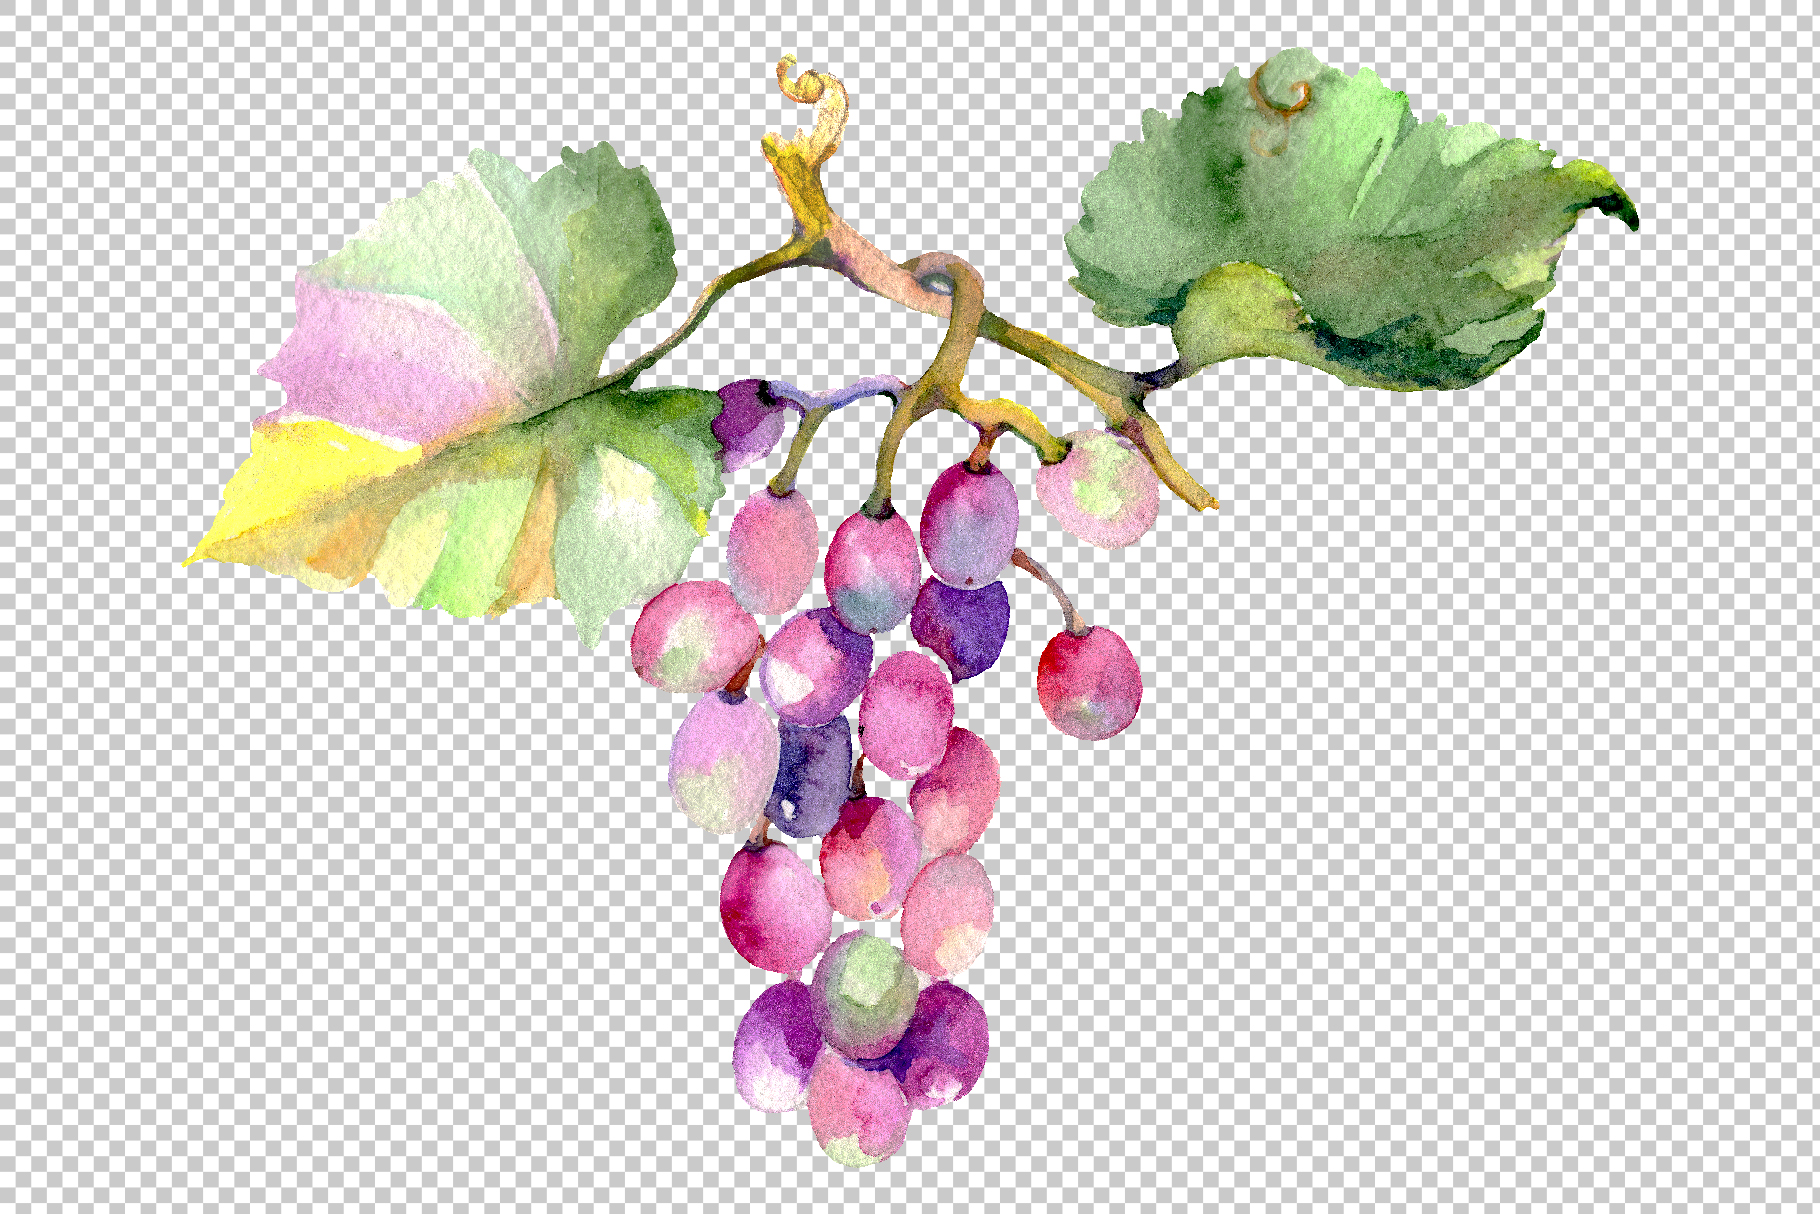 Blue grapes Watercolor png example image 7